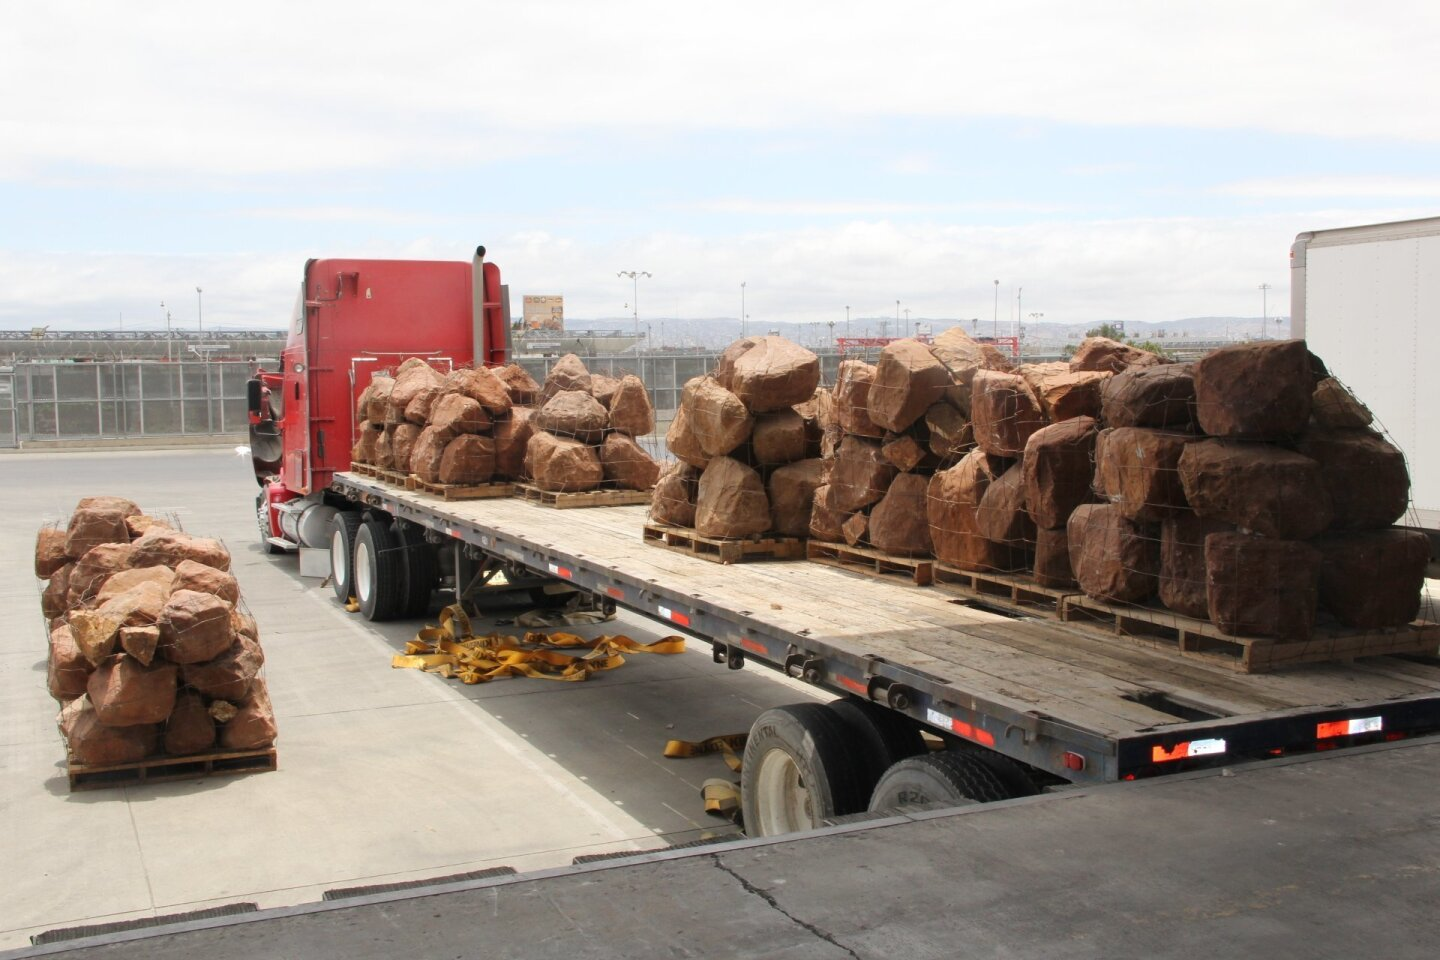 Customs and Border Protection officers seized 577 bundles of marijuana hidden in landscaping stones loaded on a flatbed semi-truck Saturday, authorities said